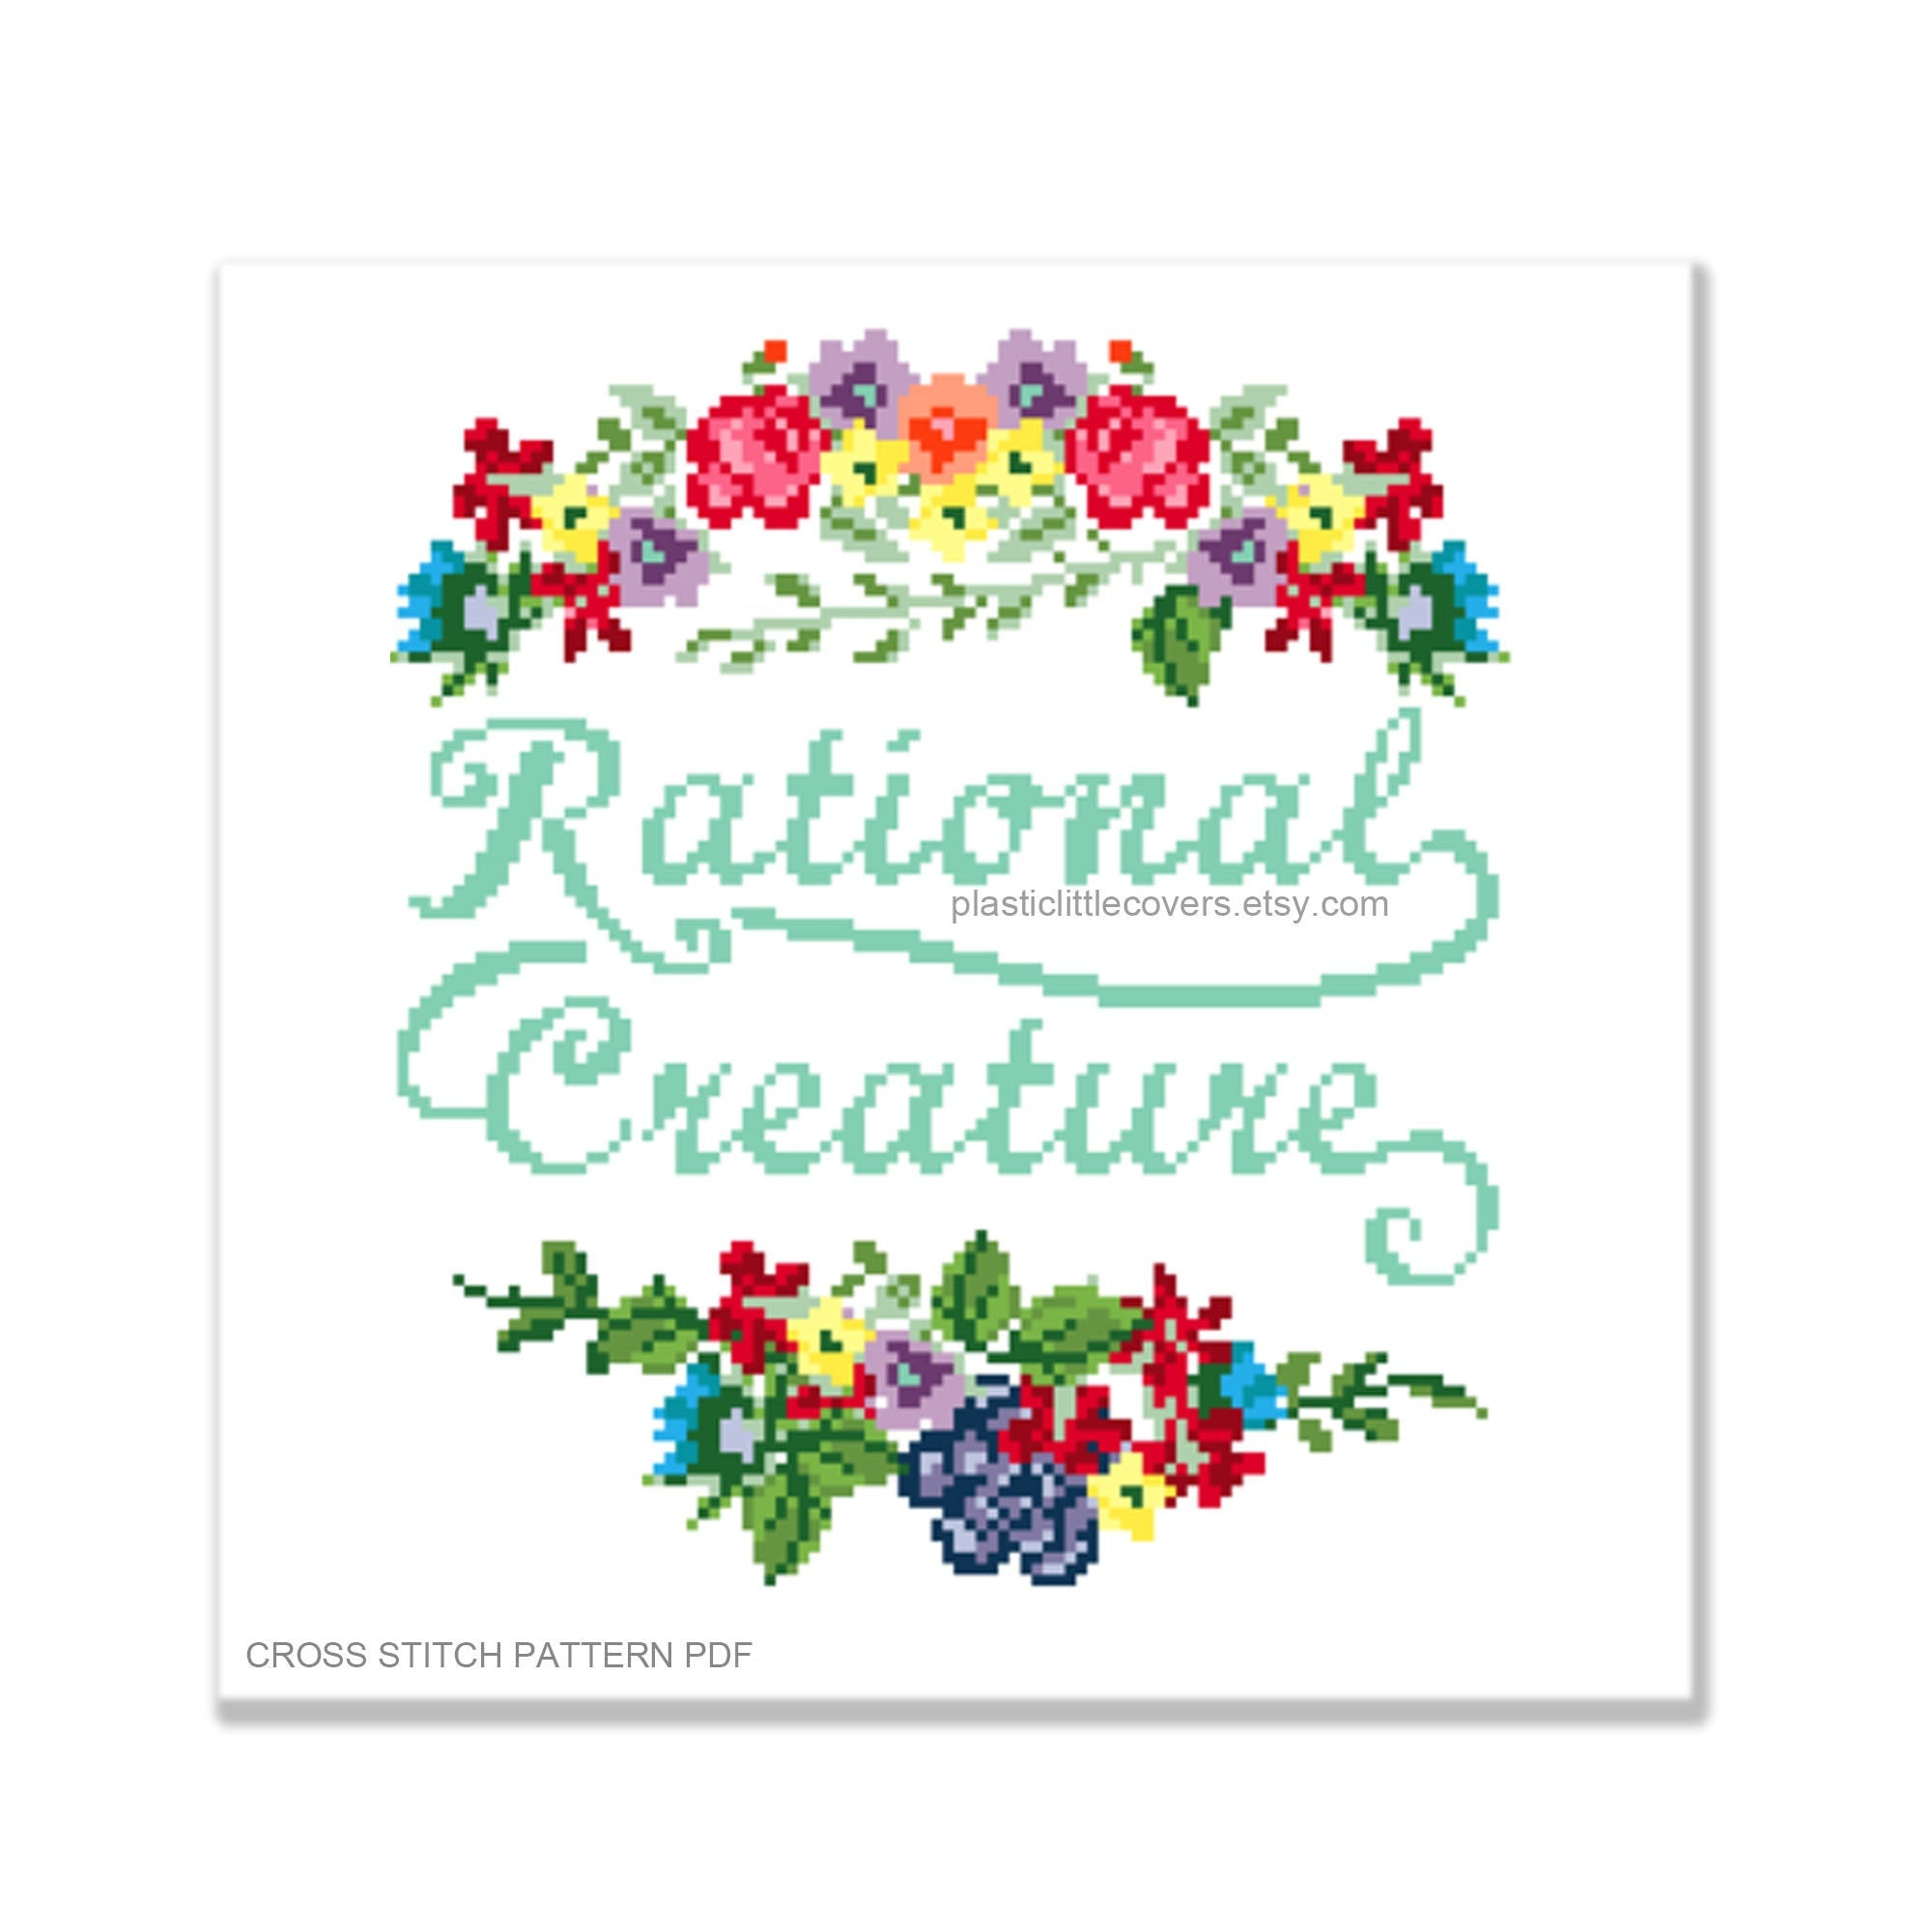 Rational Creature - Cross Stitch Pattern PDF.